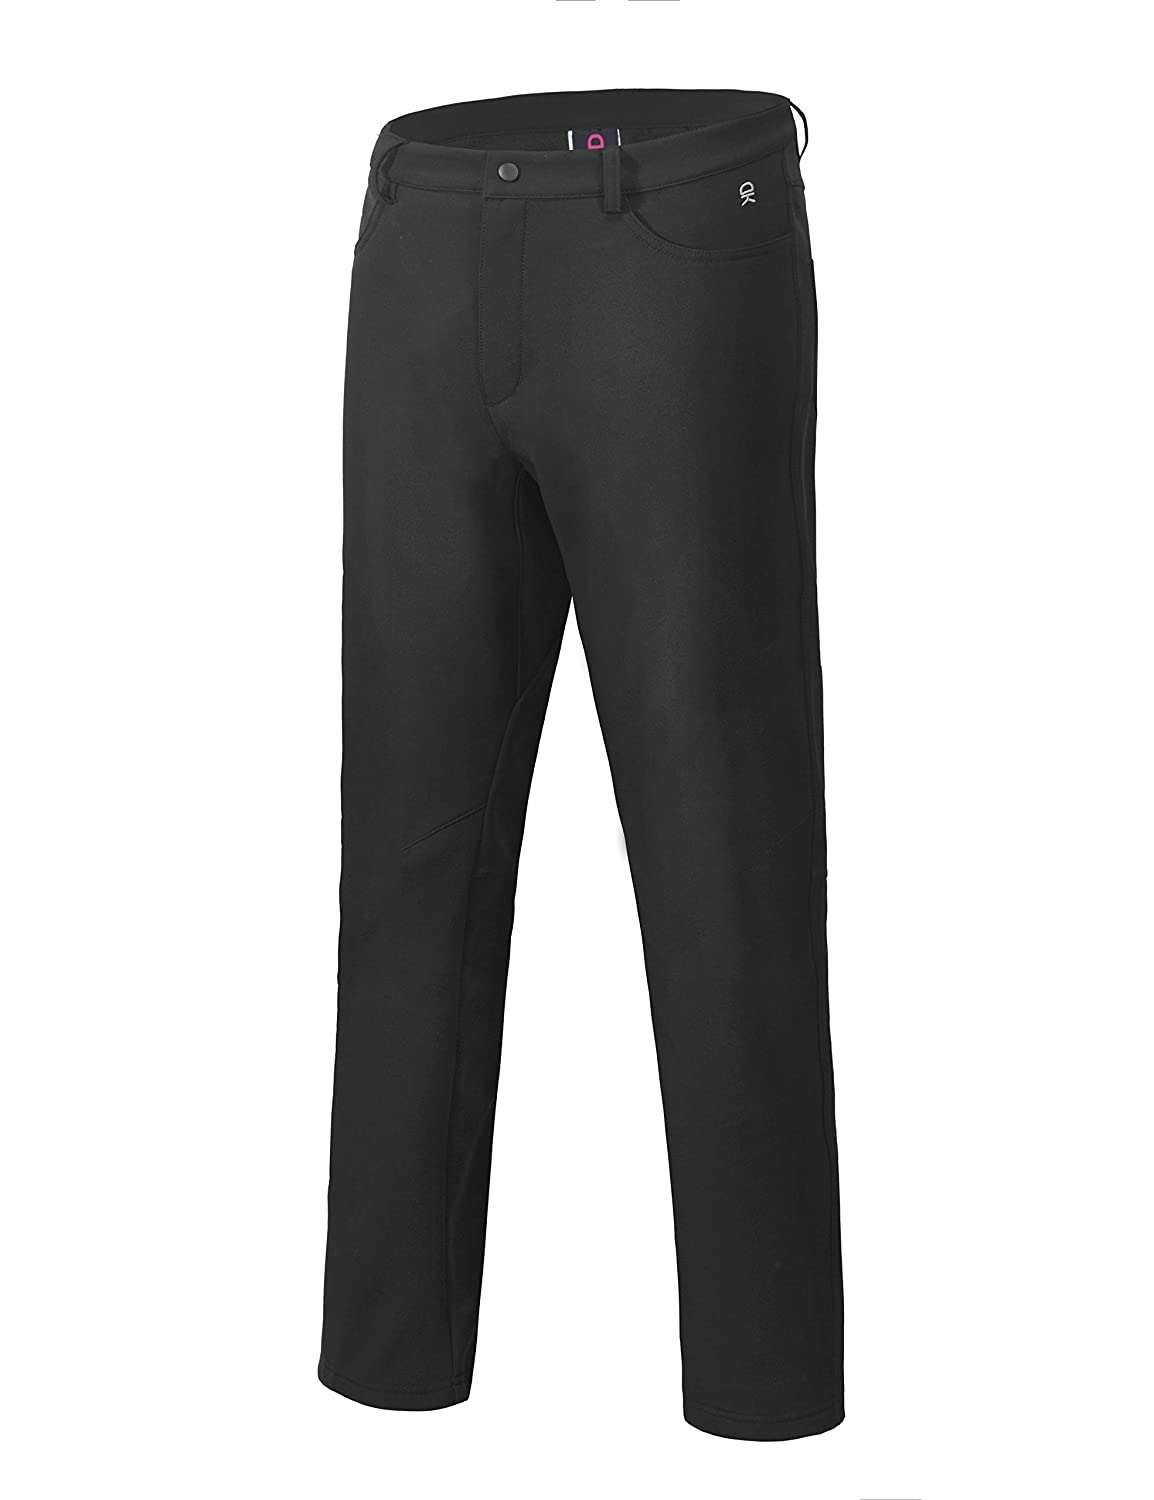 Black New Little Donkey Andy Women's Winter Hiking Ski Snowboarding Pants, Softshell Pants, Fleece Lined and Water Repellant